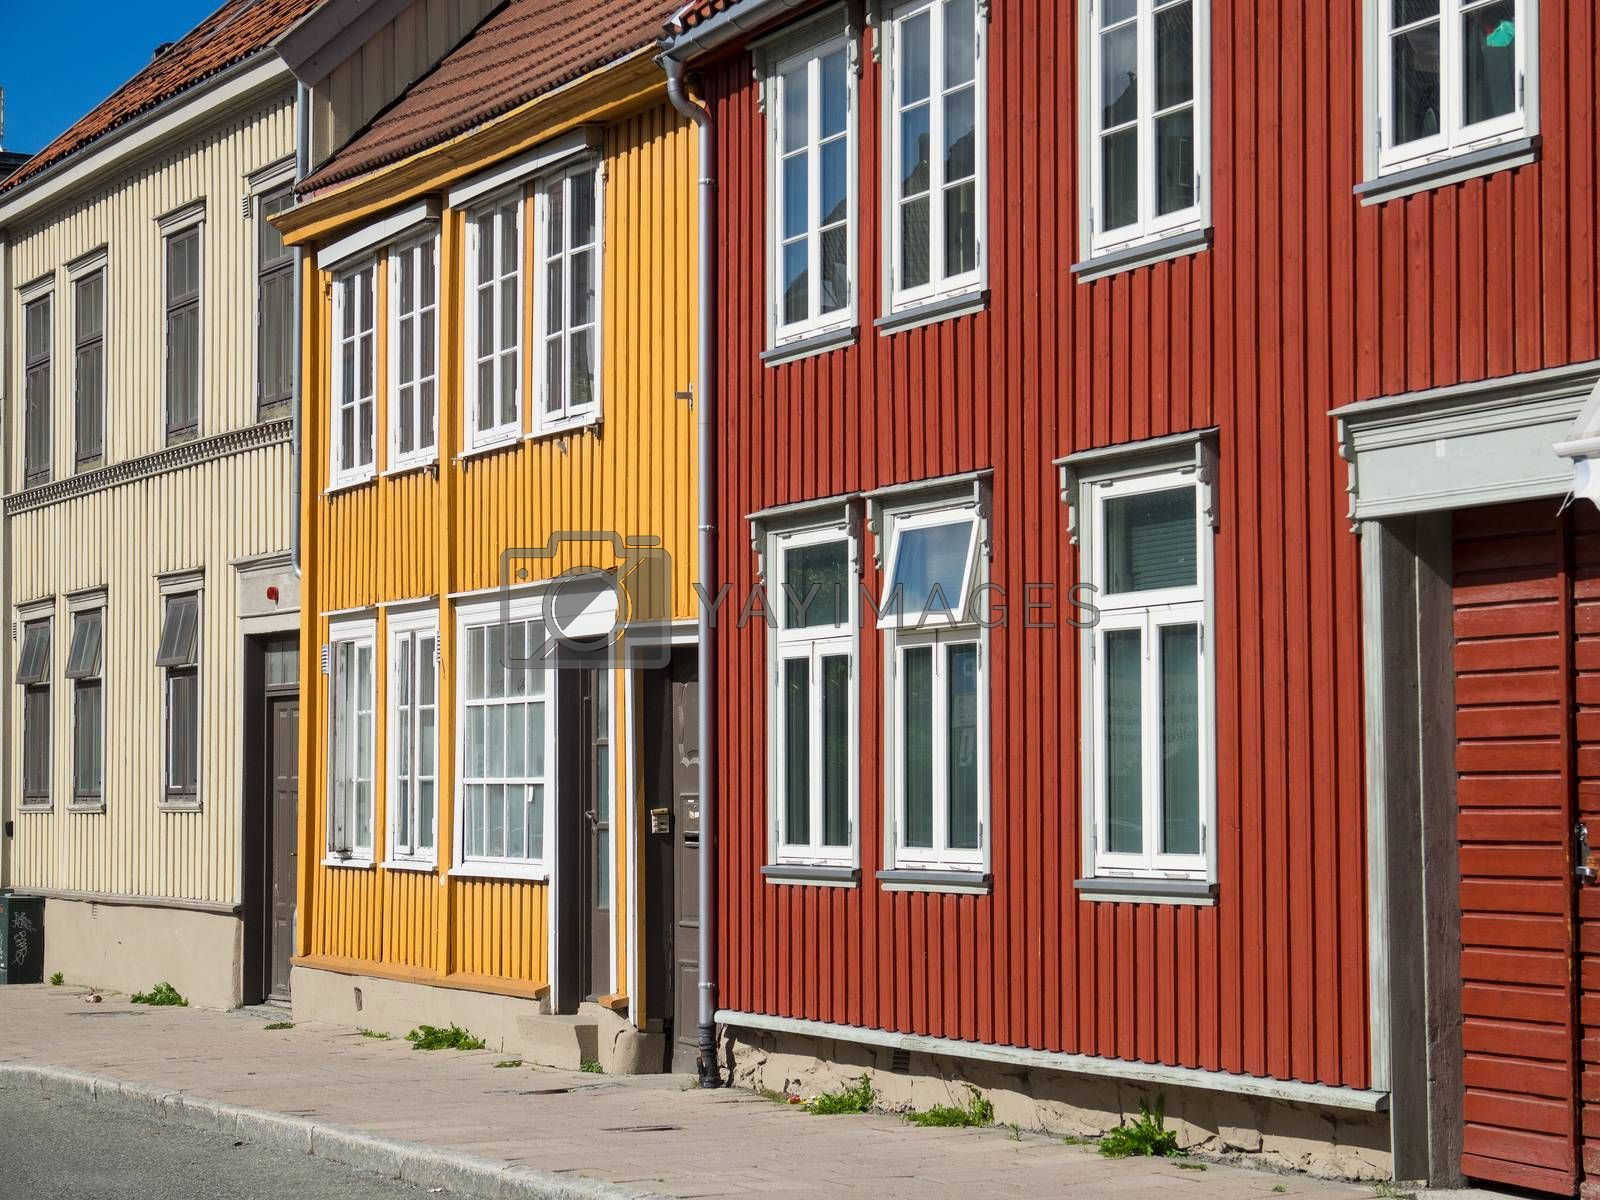 Traditional, wooden Norwegian townhouses in the city of Trondheim, Norway.